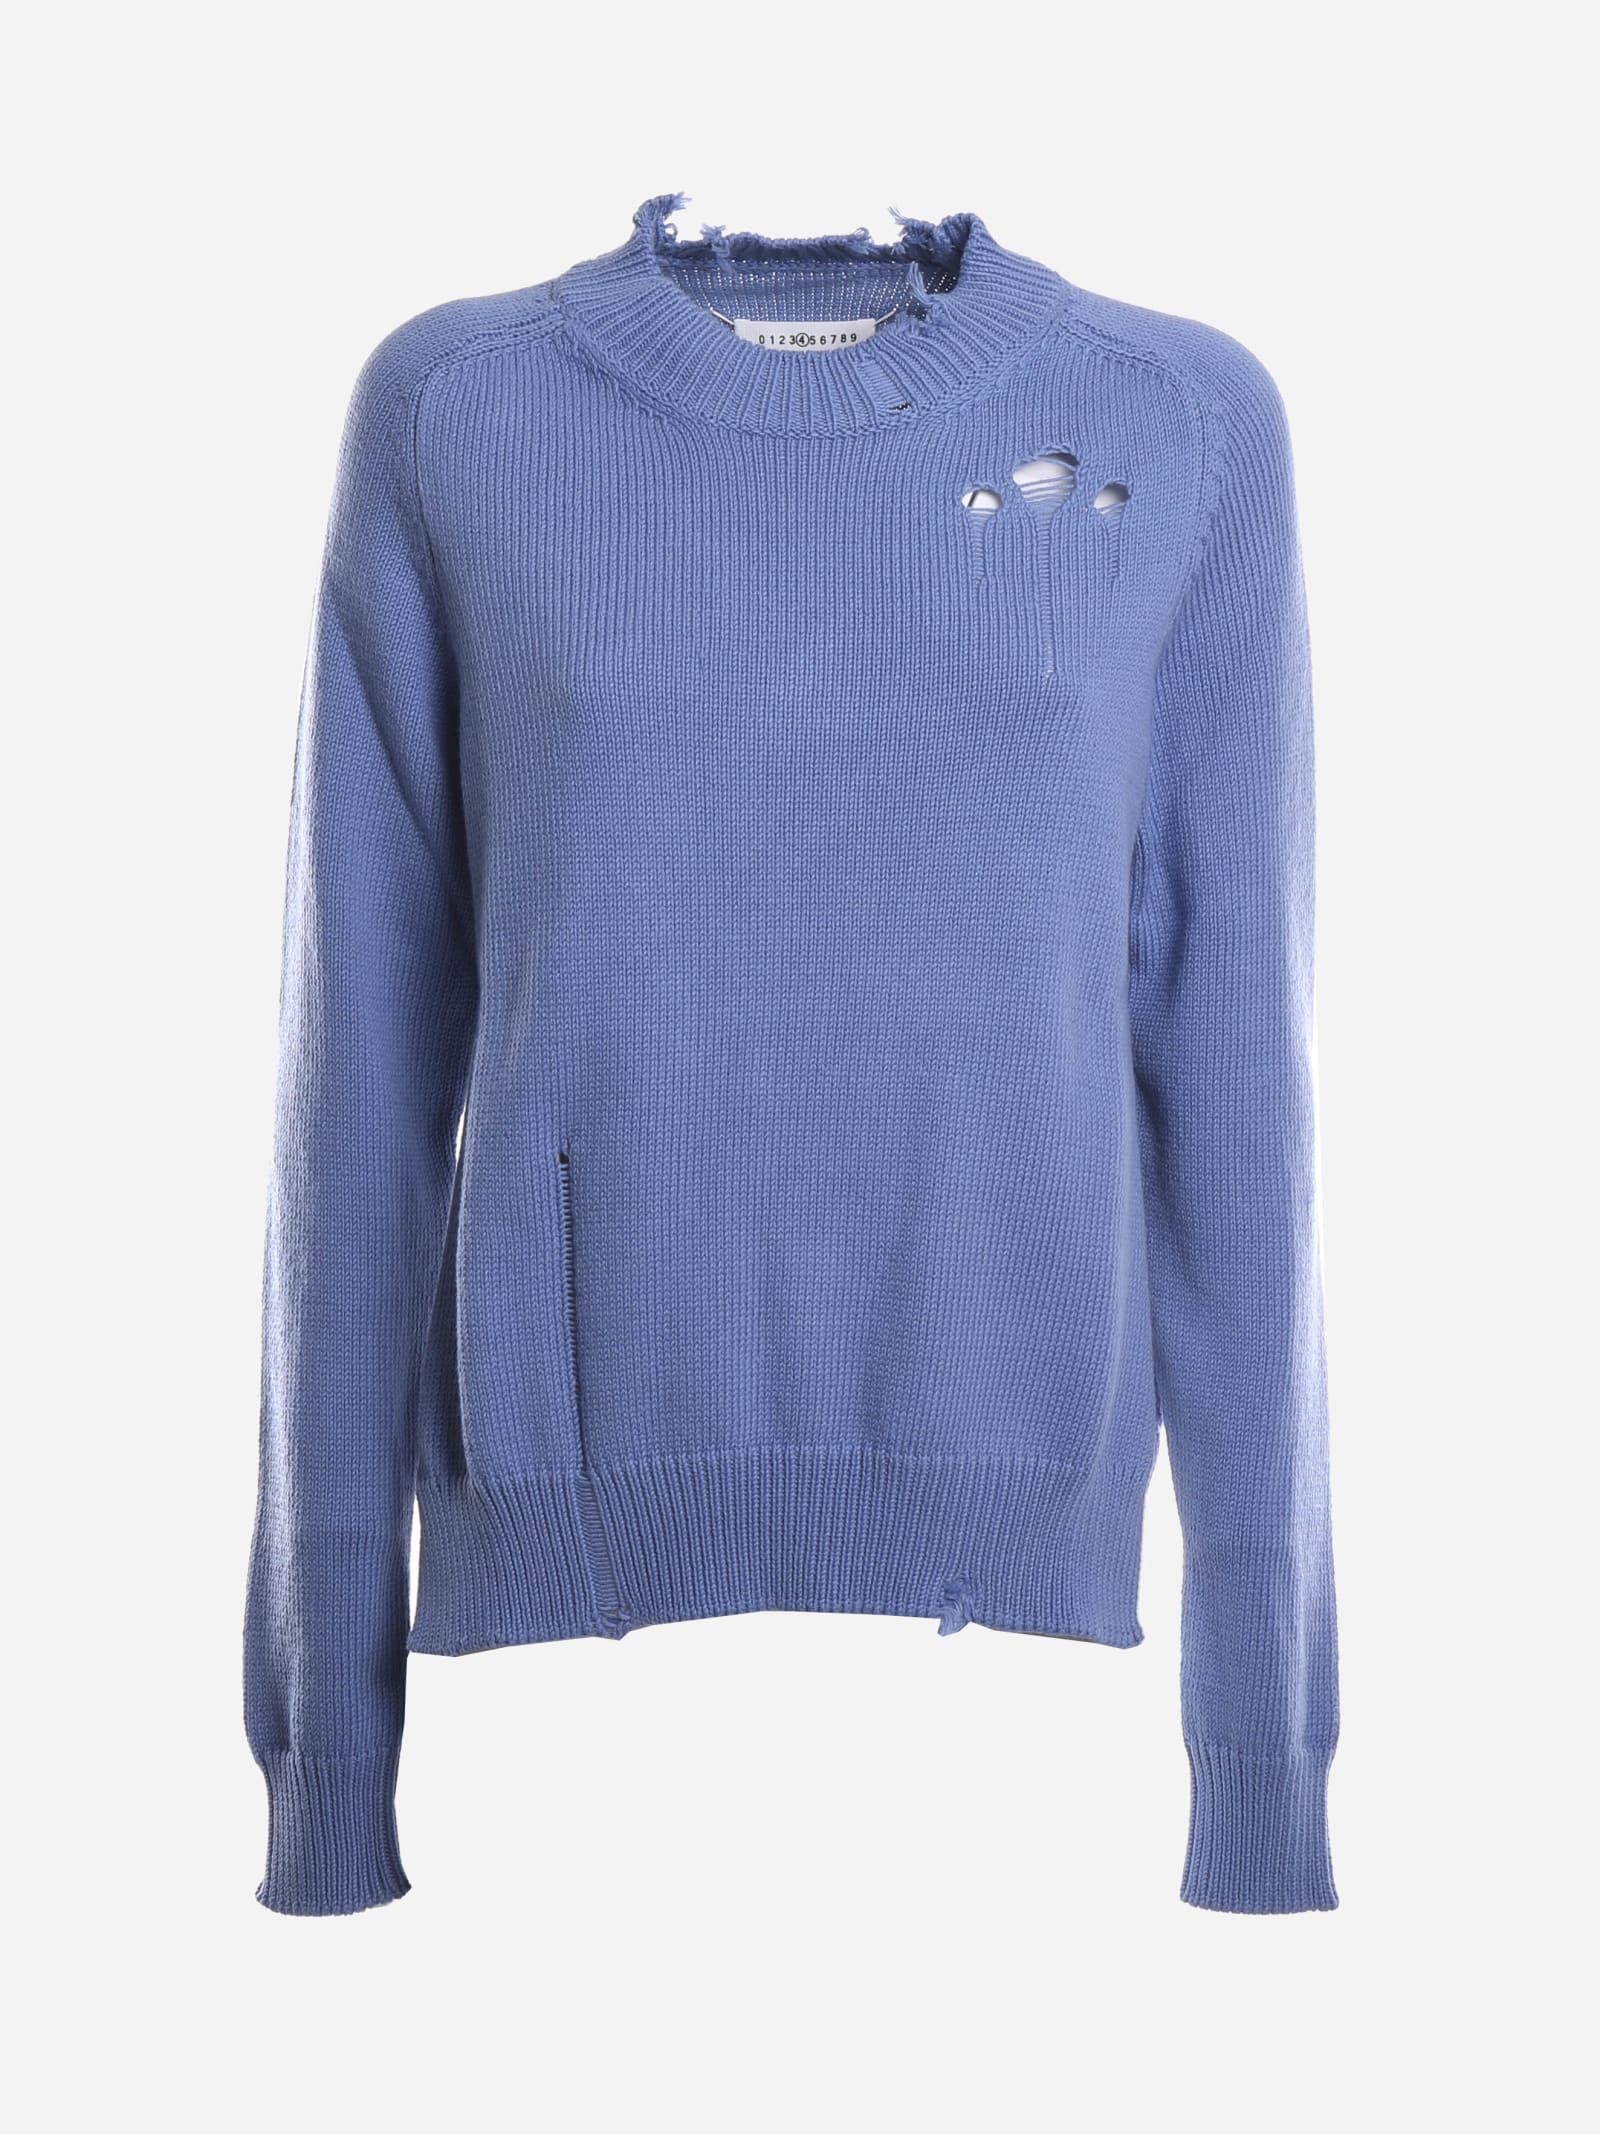 Maison Margiela COTTON PULLOVER WITH DESTROYED DETAILS